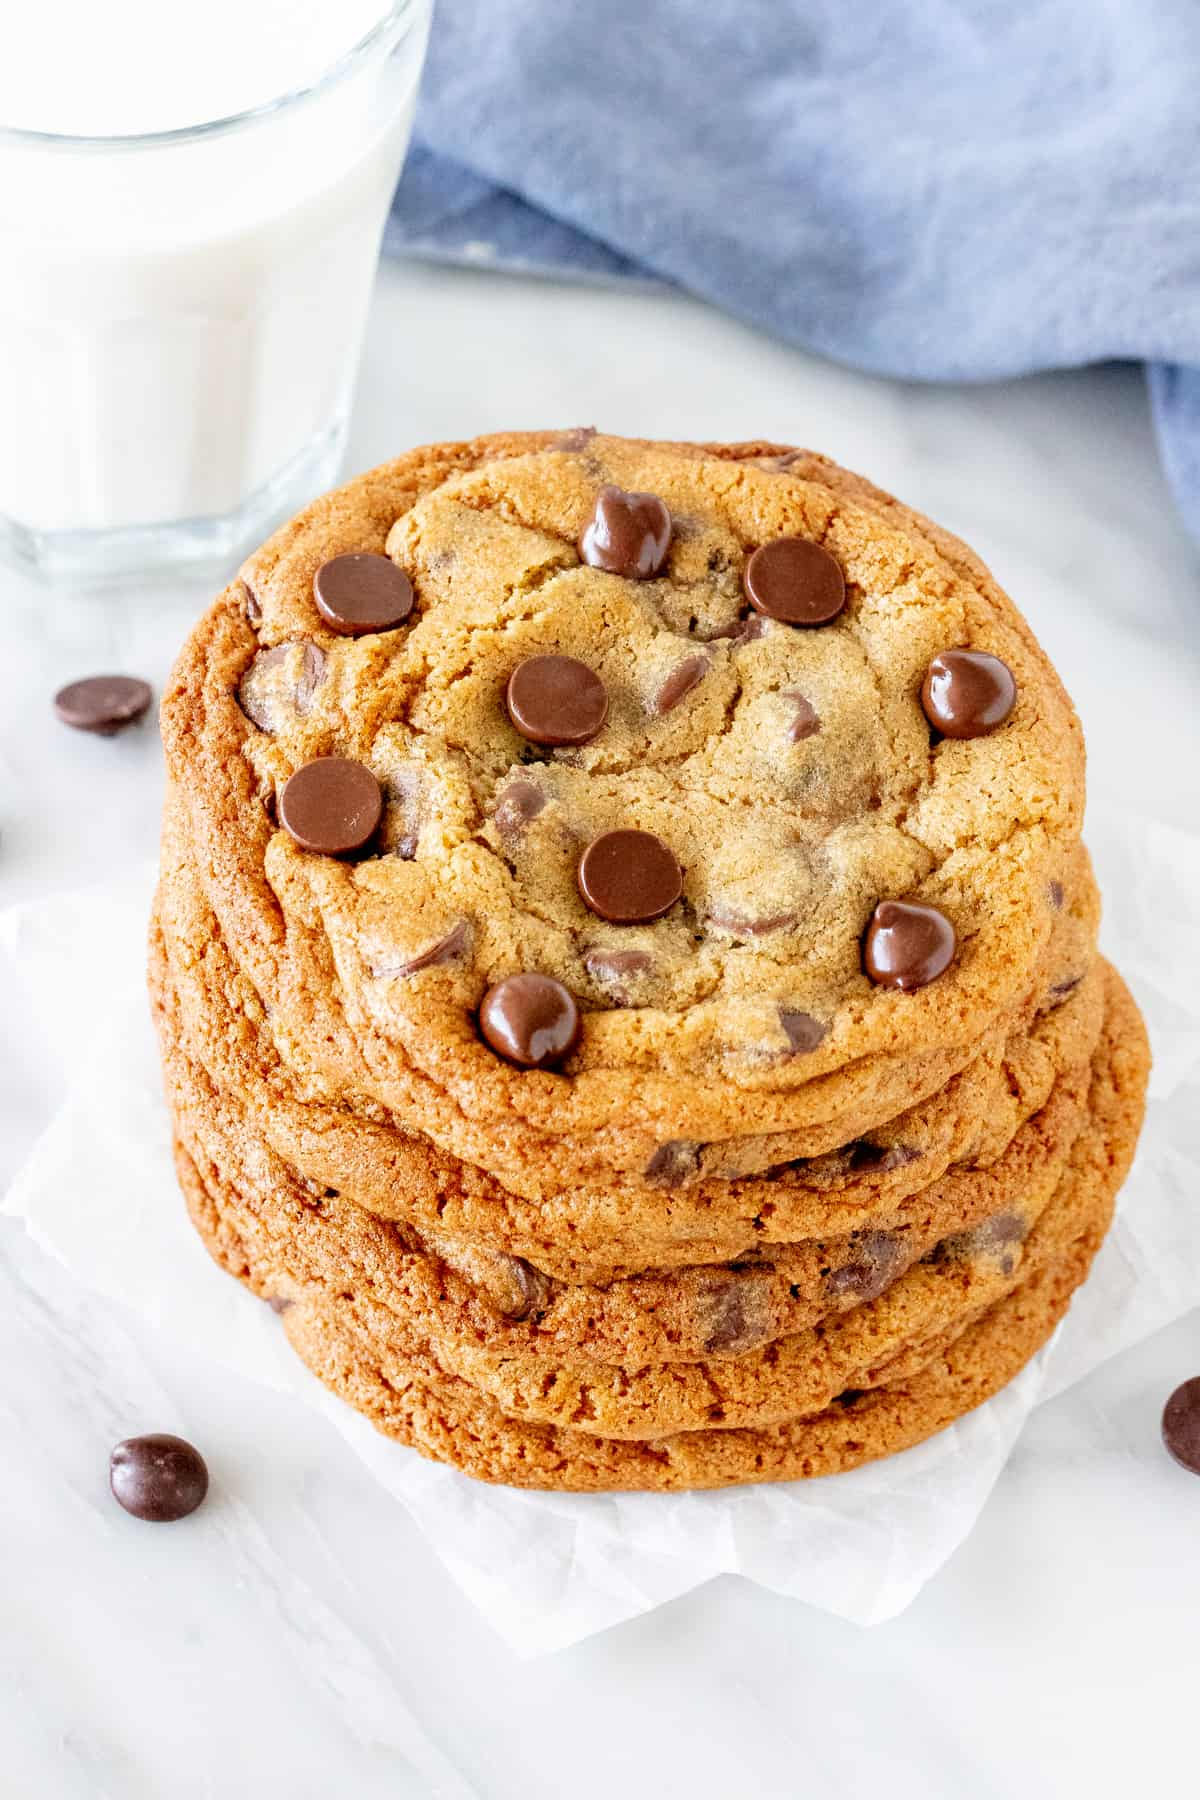 Bakery style chocolate chip cookies stacked one on top of another.